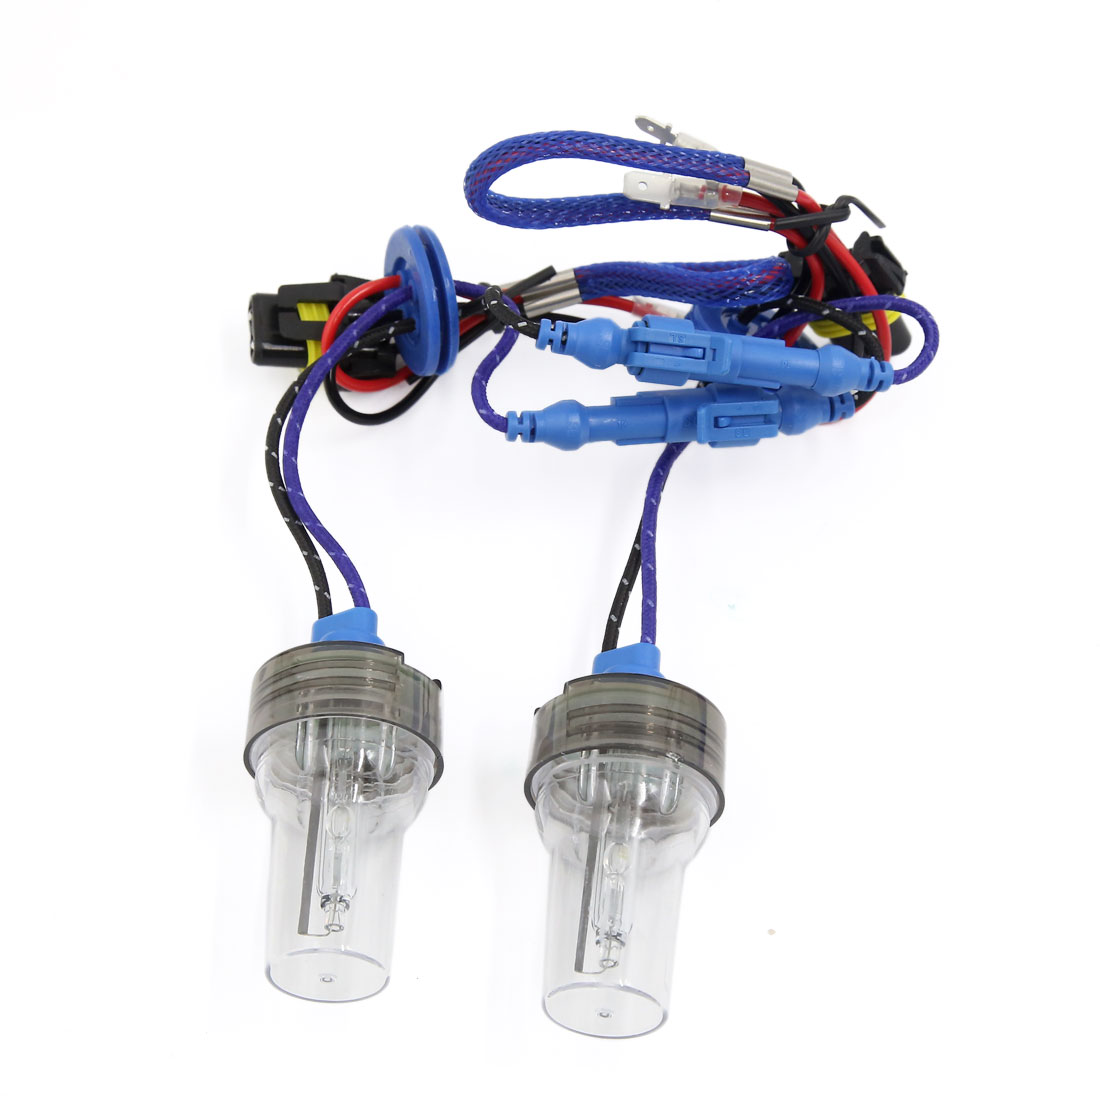 2PCS DC12V 35W-45W 5500K Auto Car H1 HID Xenon Headlight Light Lamp Bulbs